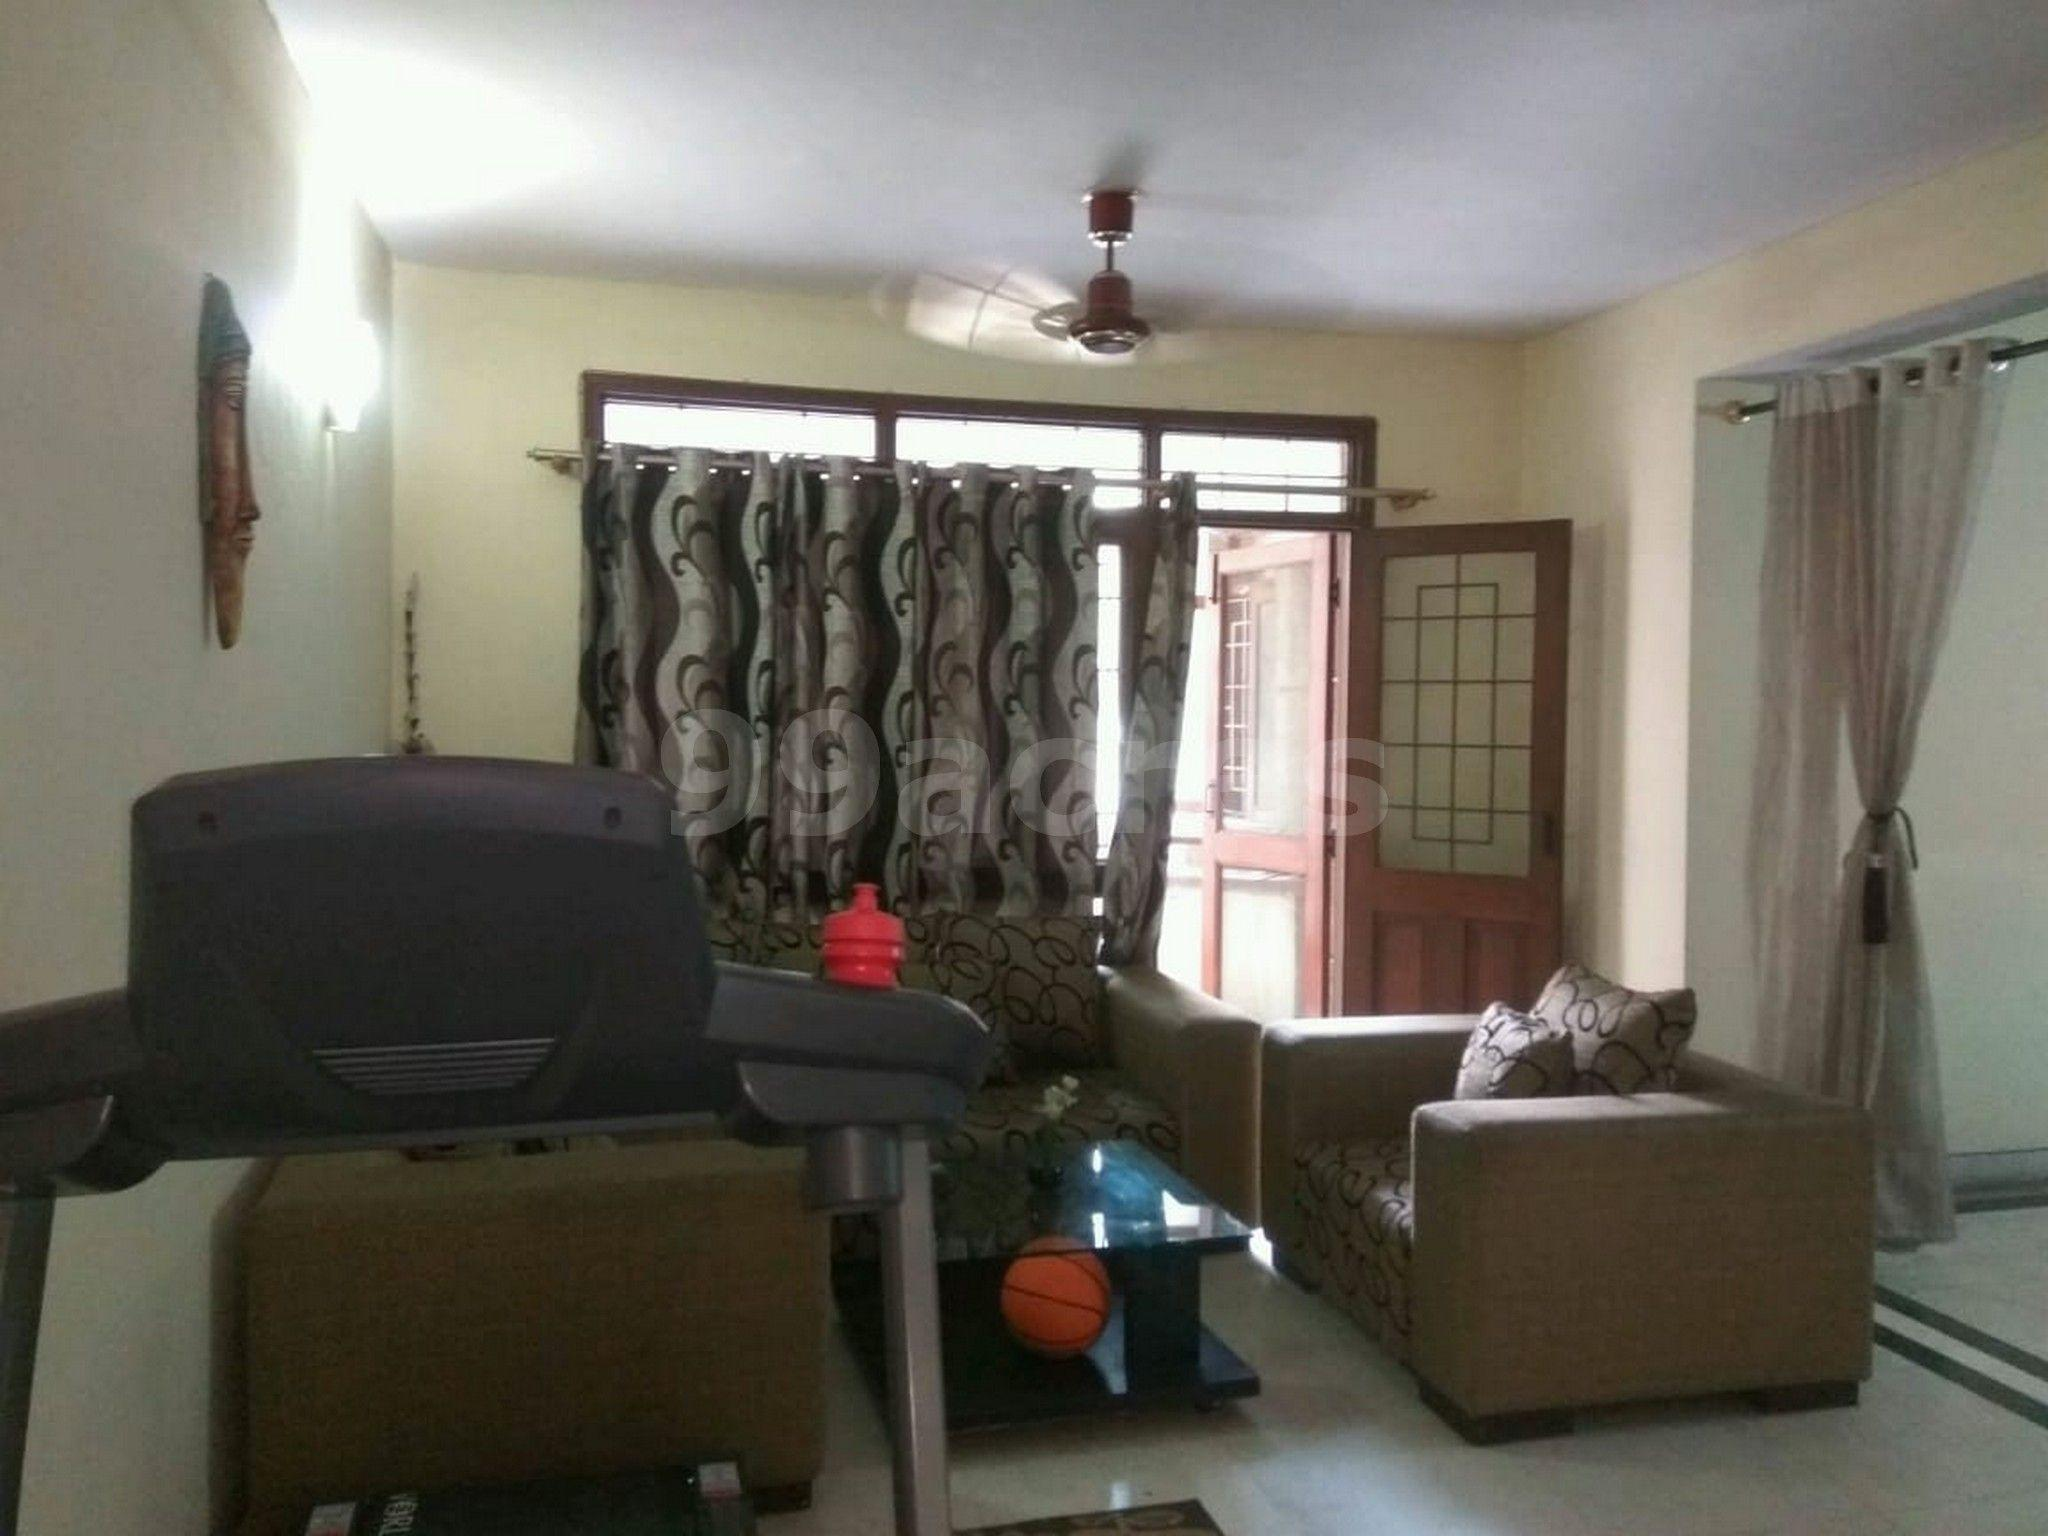 3BHK-1350sqft-flat-for-rent-in--Sector-62-Noida-TP12-2542591